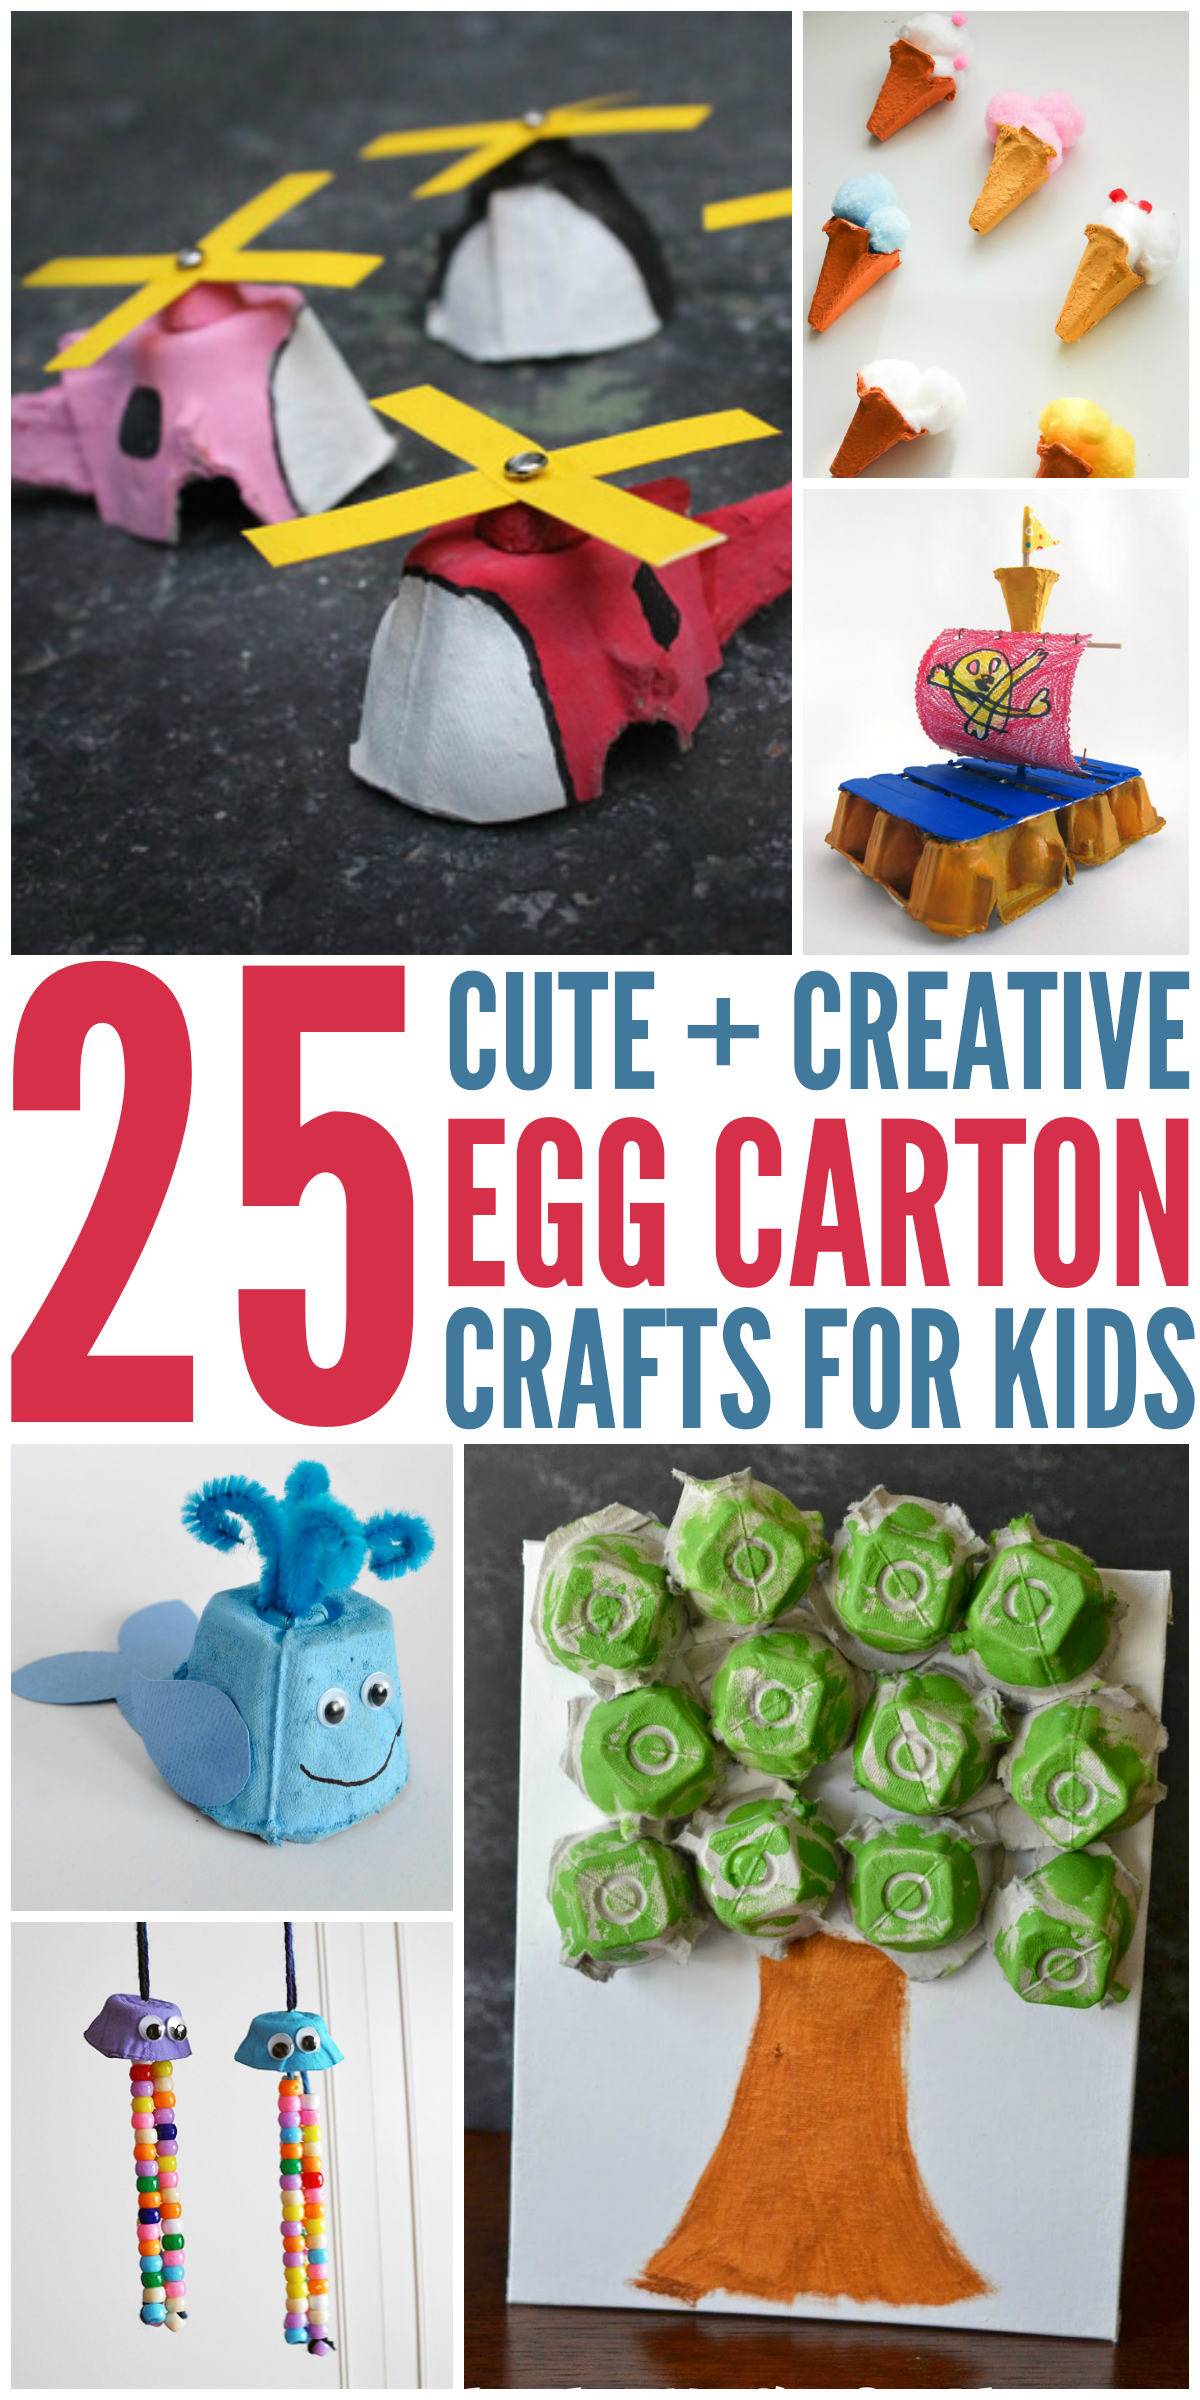 25 Cute And Creative Egg Carton Crafts Egg Carton Crafts Craft Activities For Kids Toddler Crafts